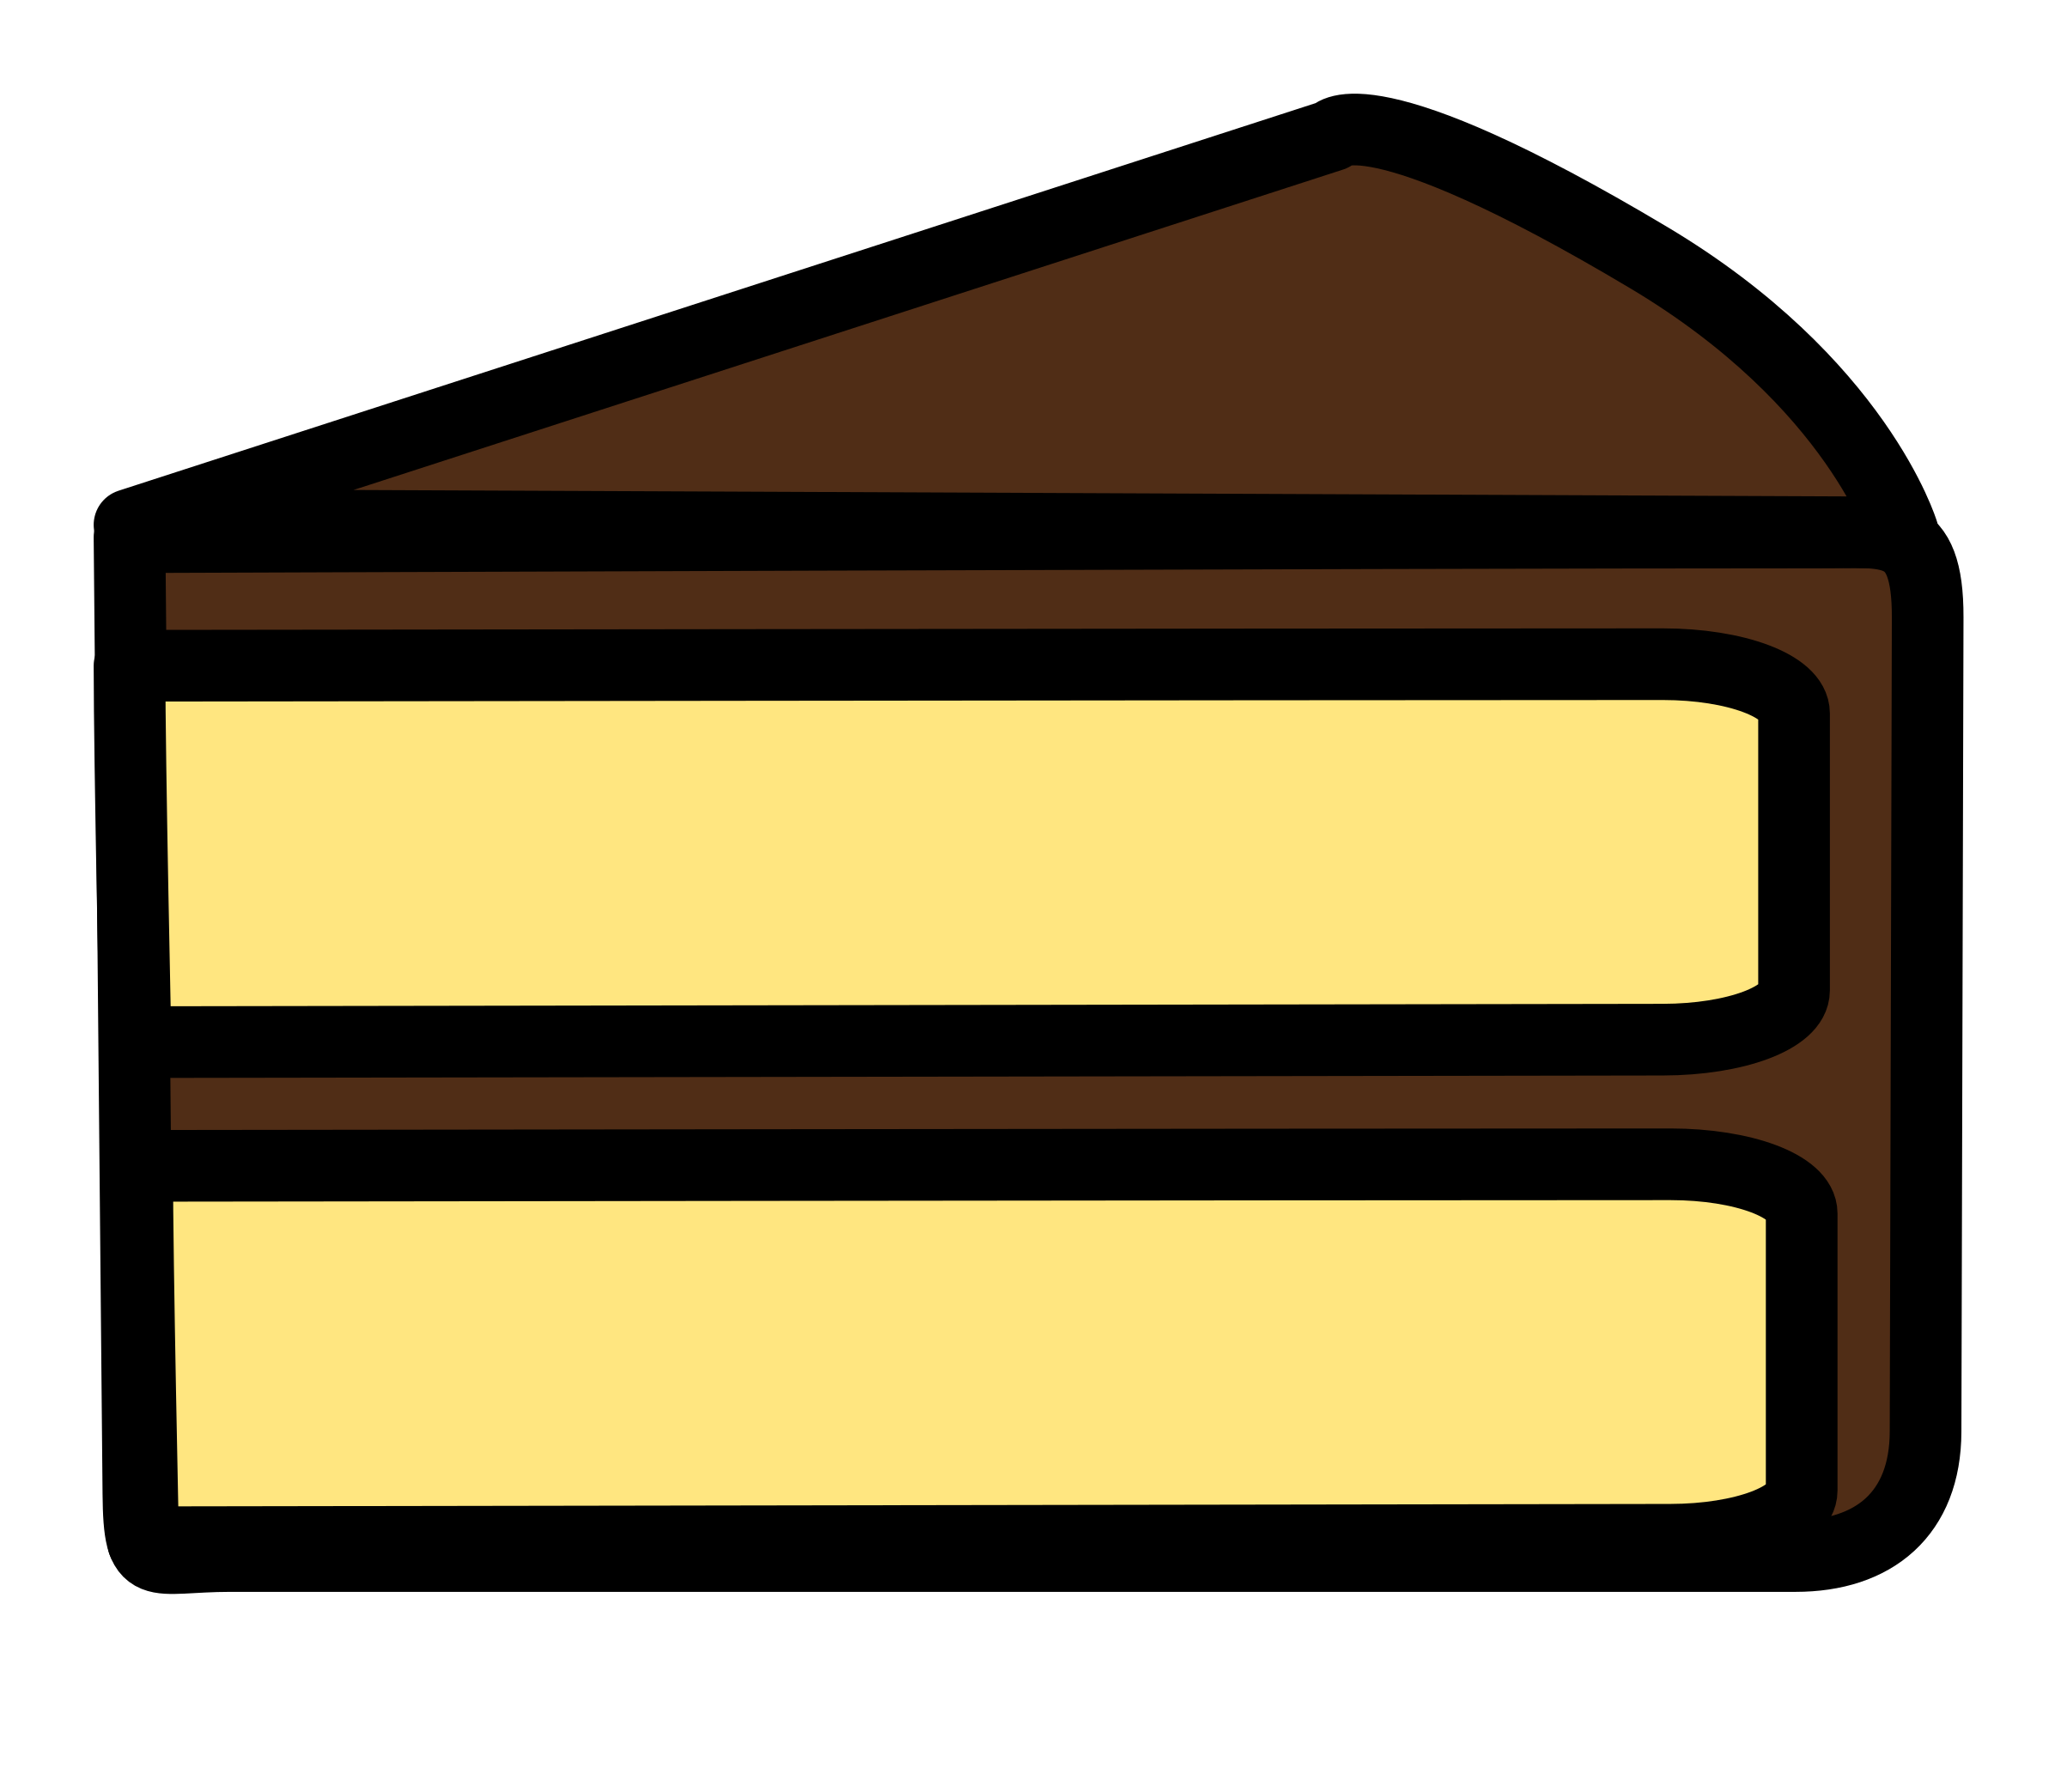 Slice Of Cake Clipart.